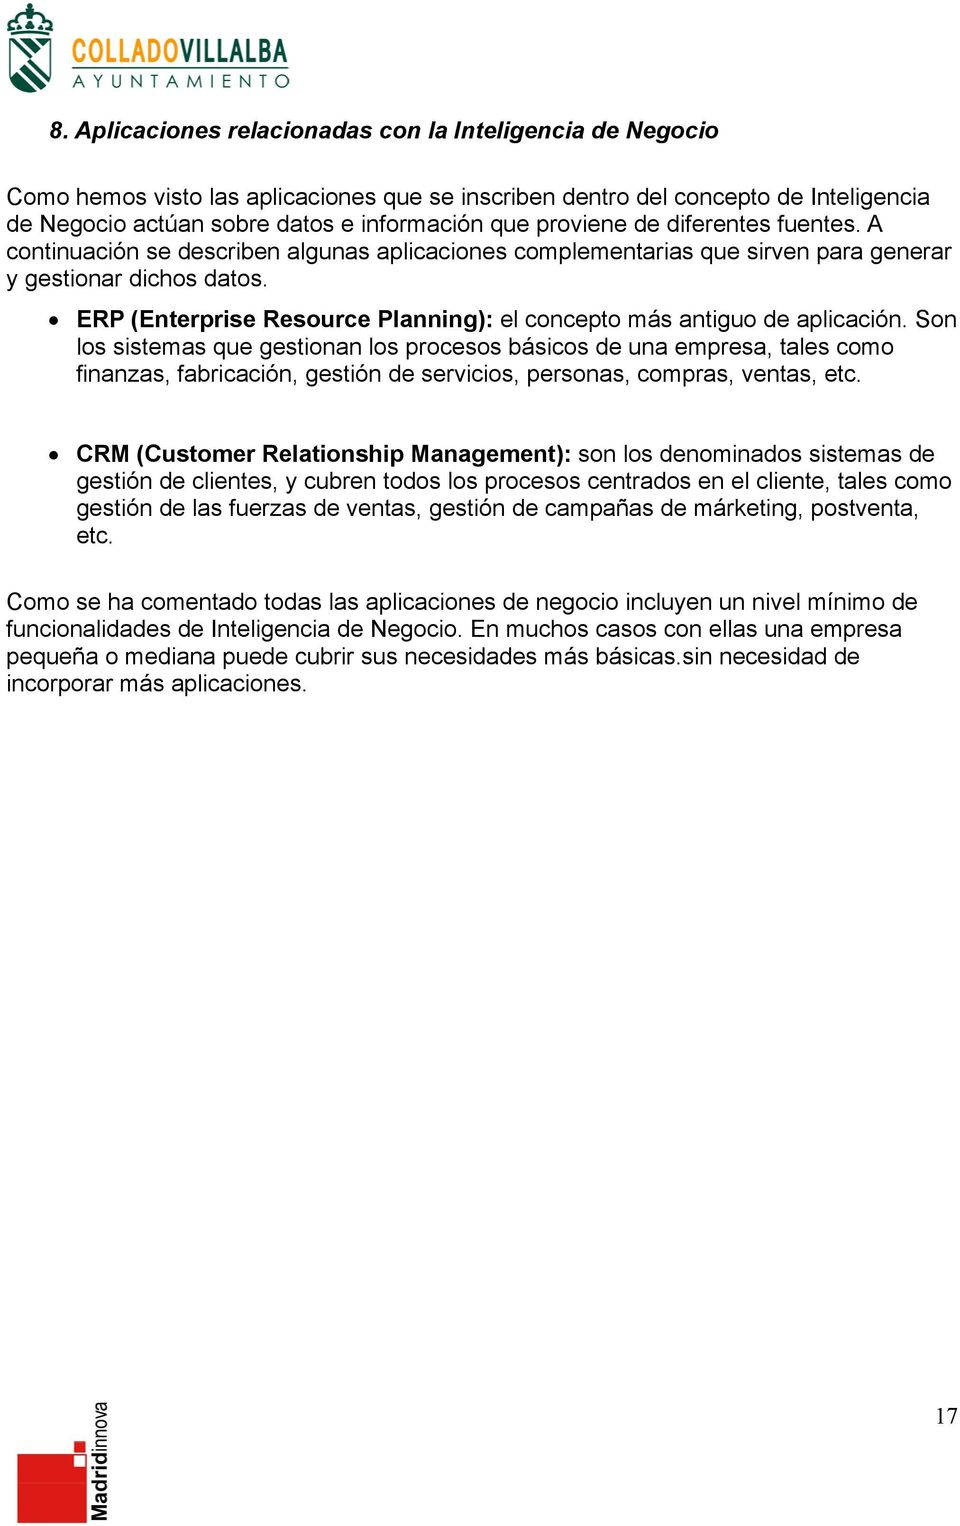 ERP (Enterprise Resource Planning): el concepto más antiguo de aplicación.